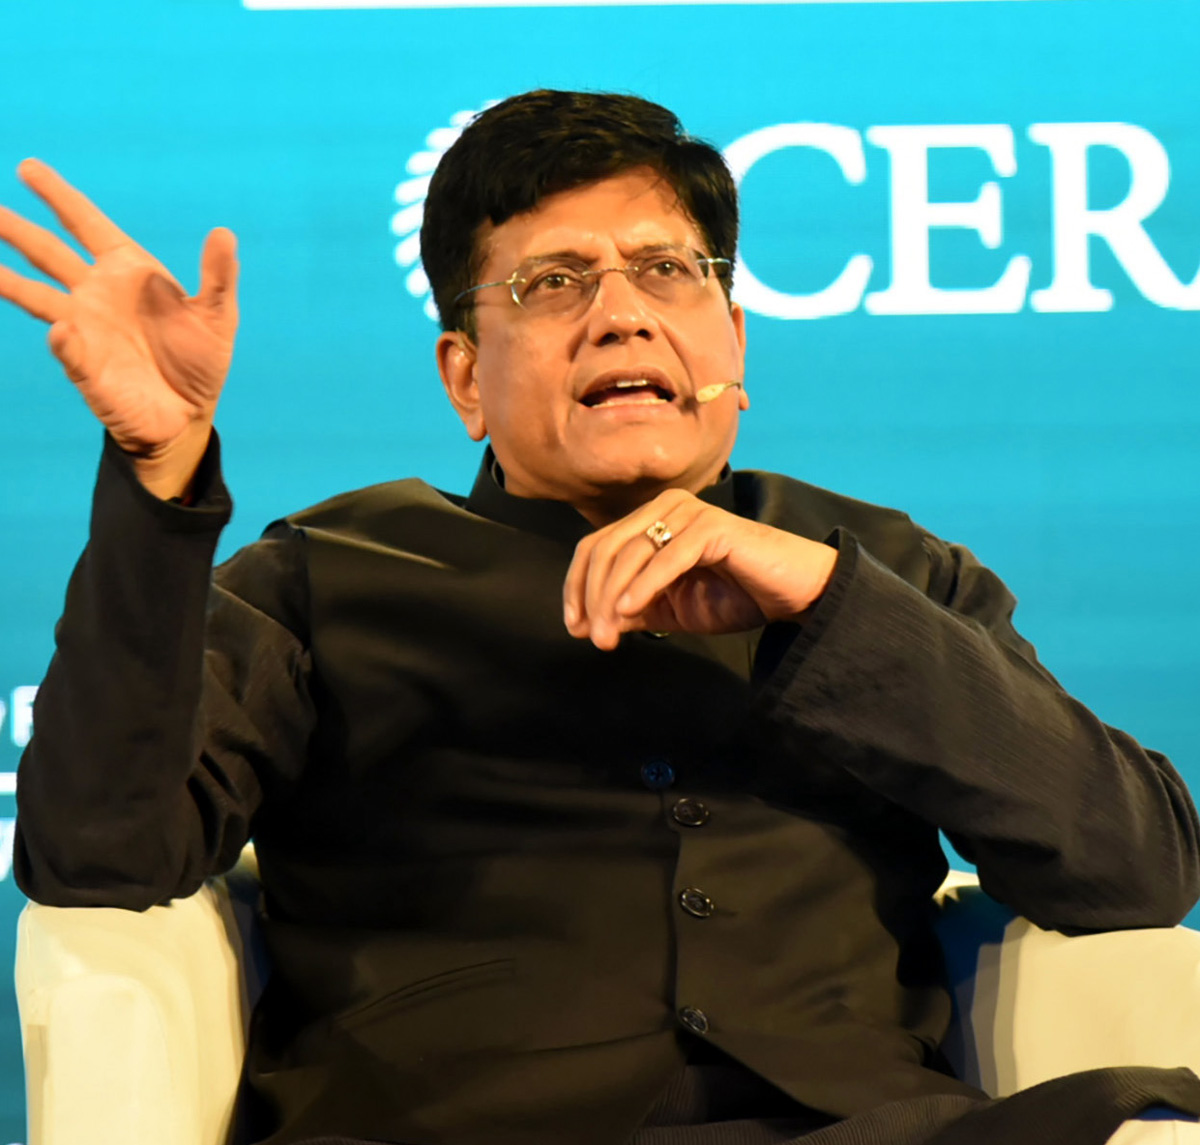 Union Minister for Railways and Commerce & Industry, Piyush Goyal at the third India Energy Forum, in New Delhi on Tuesday.